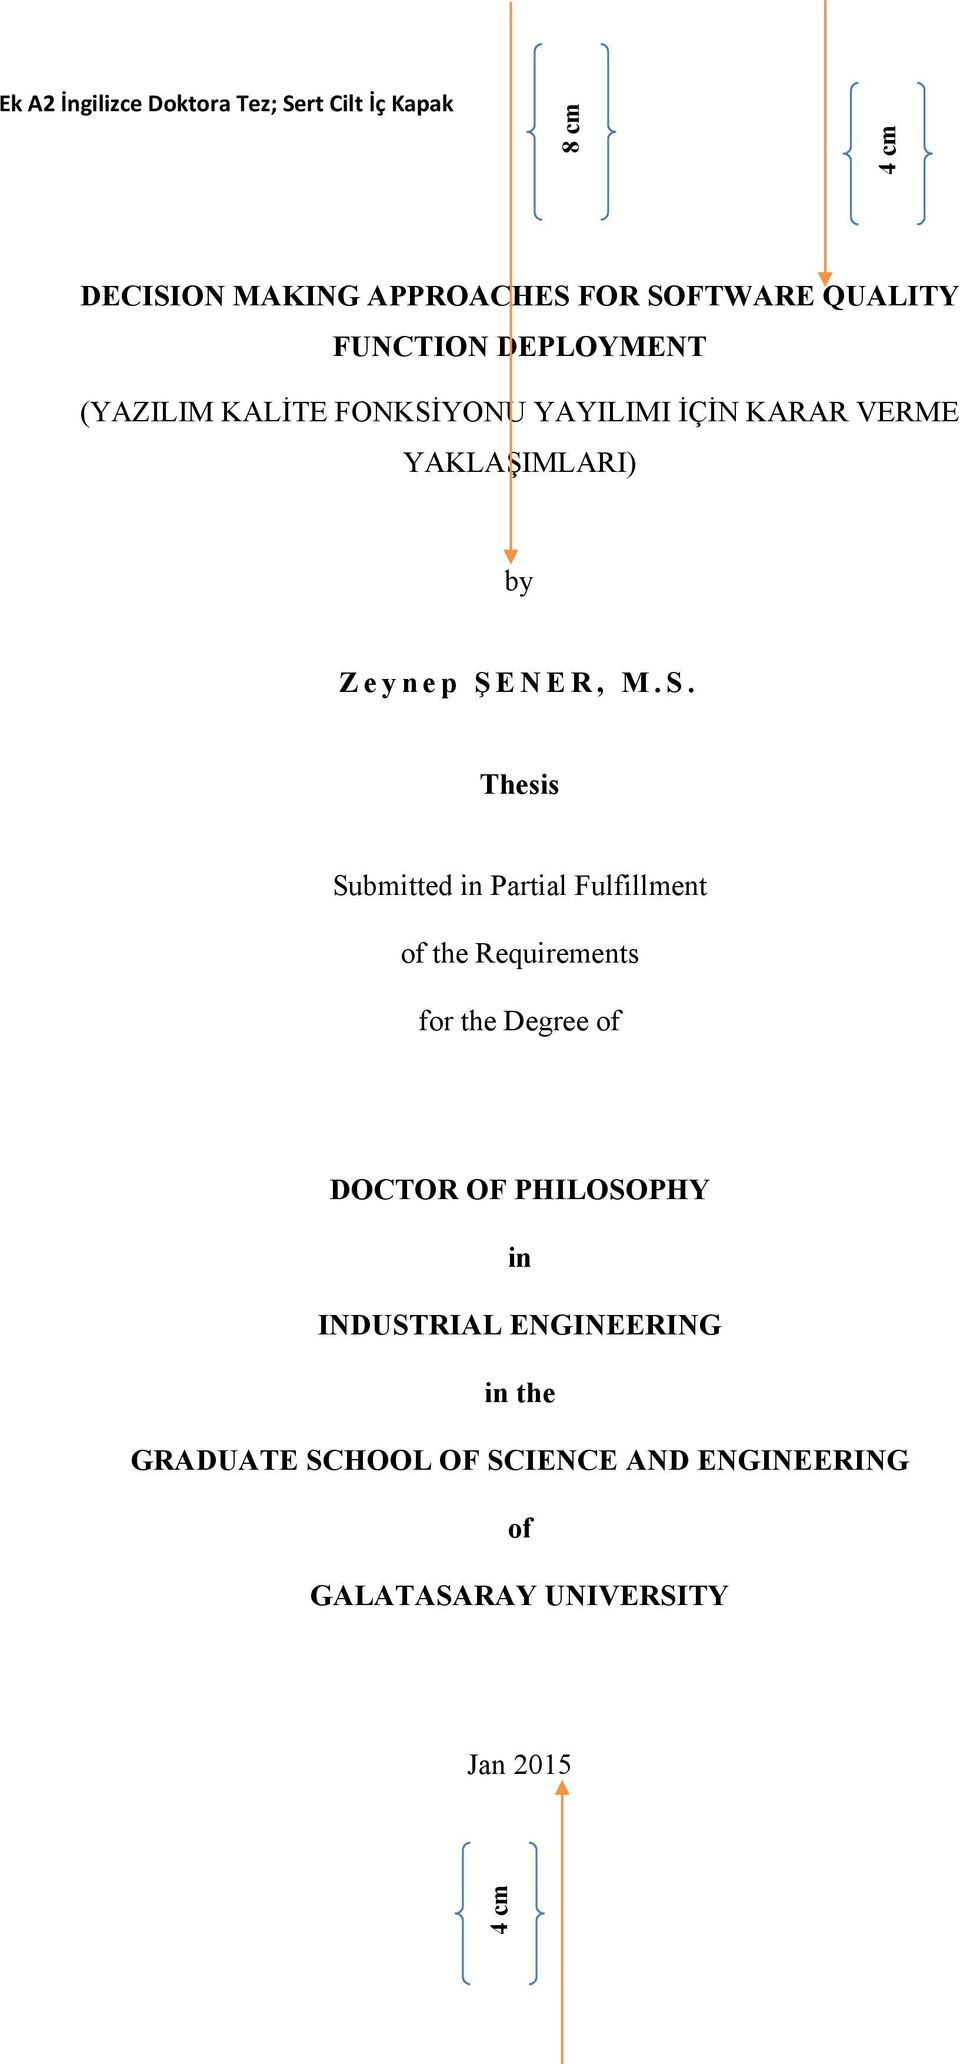 M.S. Thesis Submitted in Partial Fulfillment of the Requirements for the Degree of DOCTOR OF PHILOSOPHY